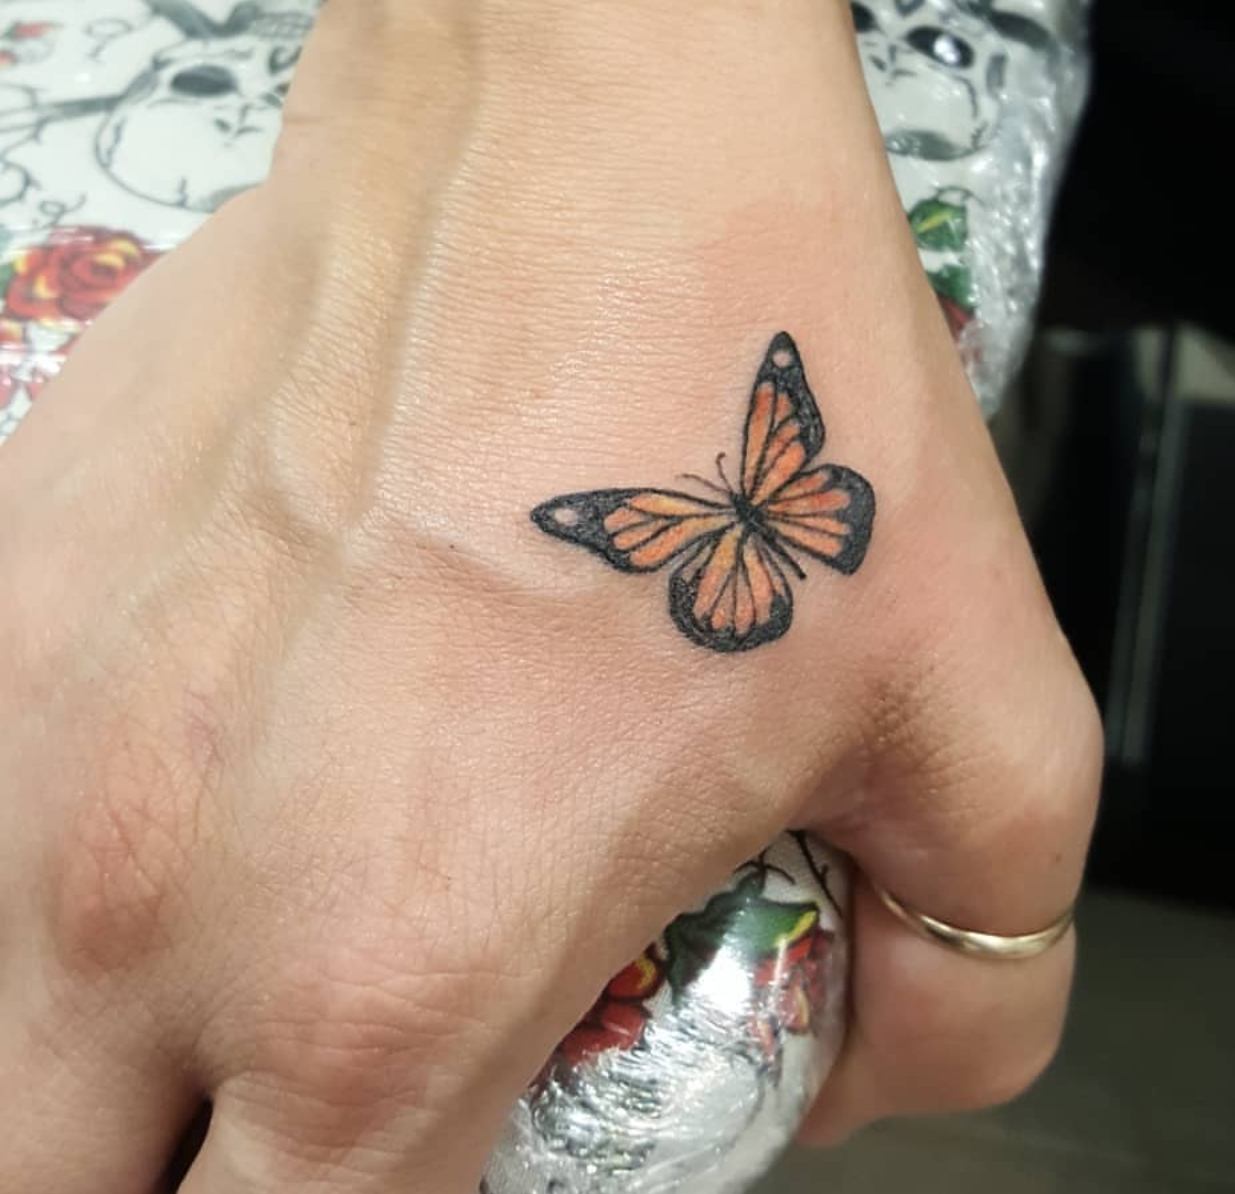 The tiniest little butterfly I did (Jacqueline Schiller, New Age Tattoo, Toronto, Ont.)